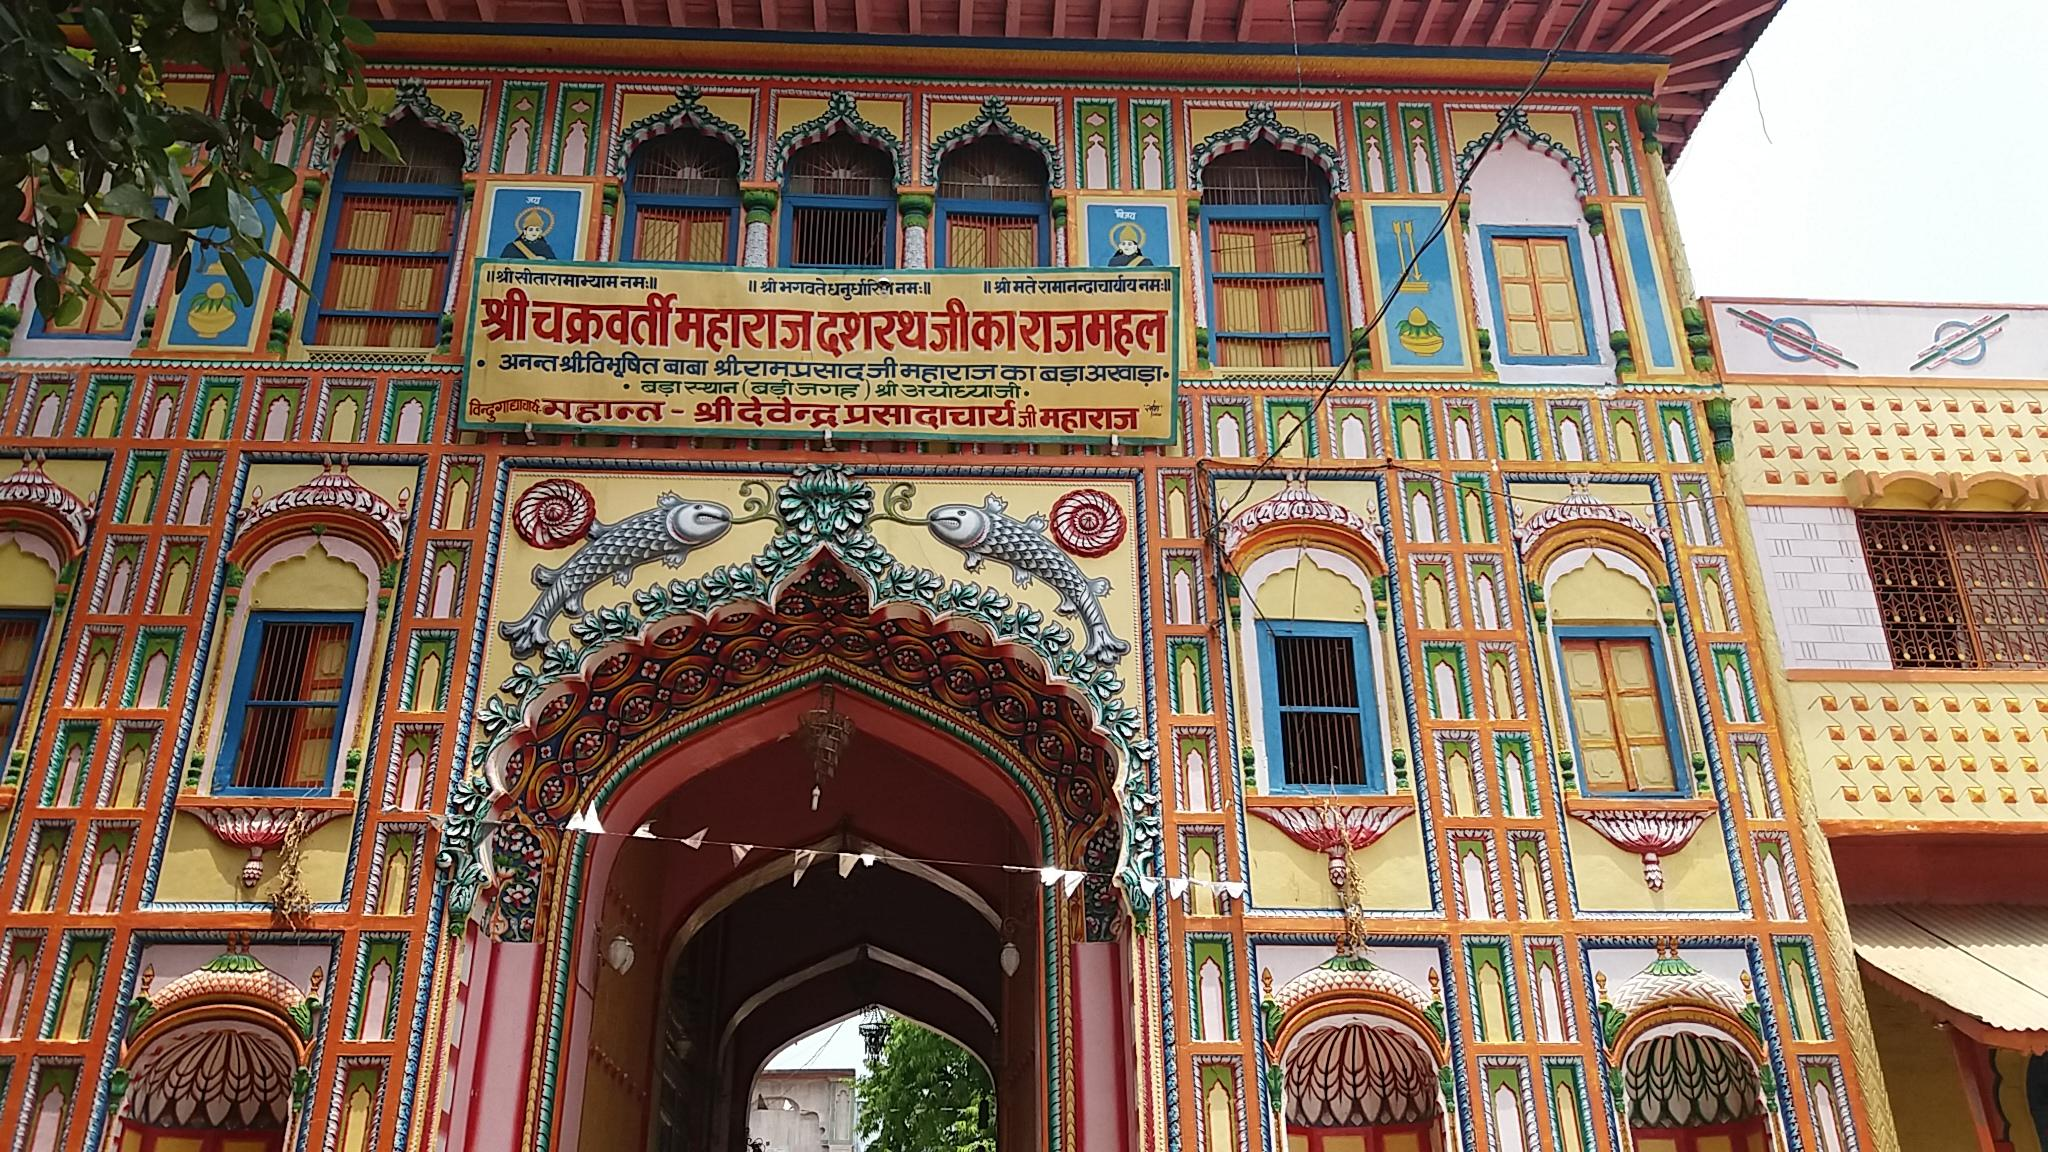 NAGESHWARNATH TEMPLE - AYODHYA Review, NAGESHWARNATH TEMPLE - AYODHYA India, Information, NAGESHWARNATH TEMPLE - AYODHYA Tourists Attractions, Nageshwarnath Temple - MouthShut.com